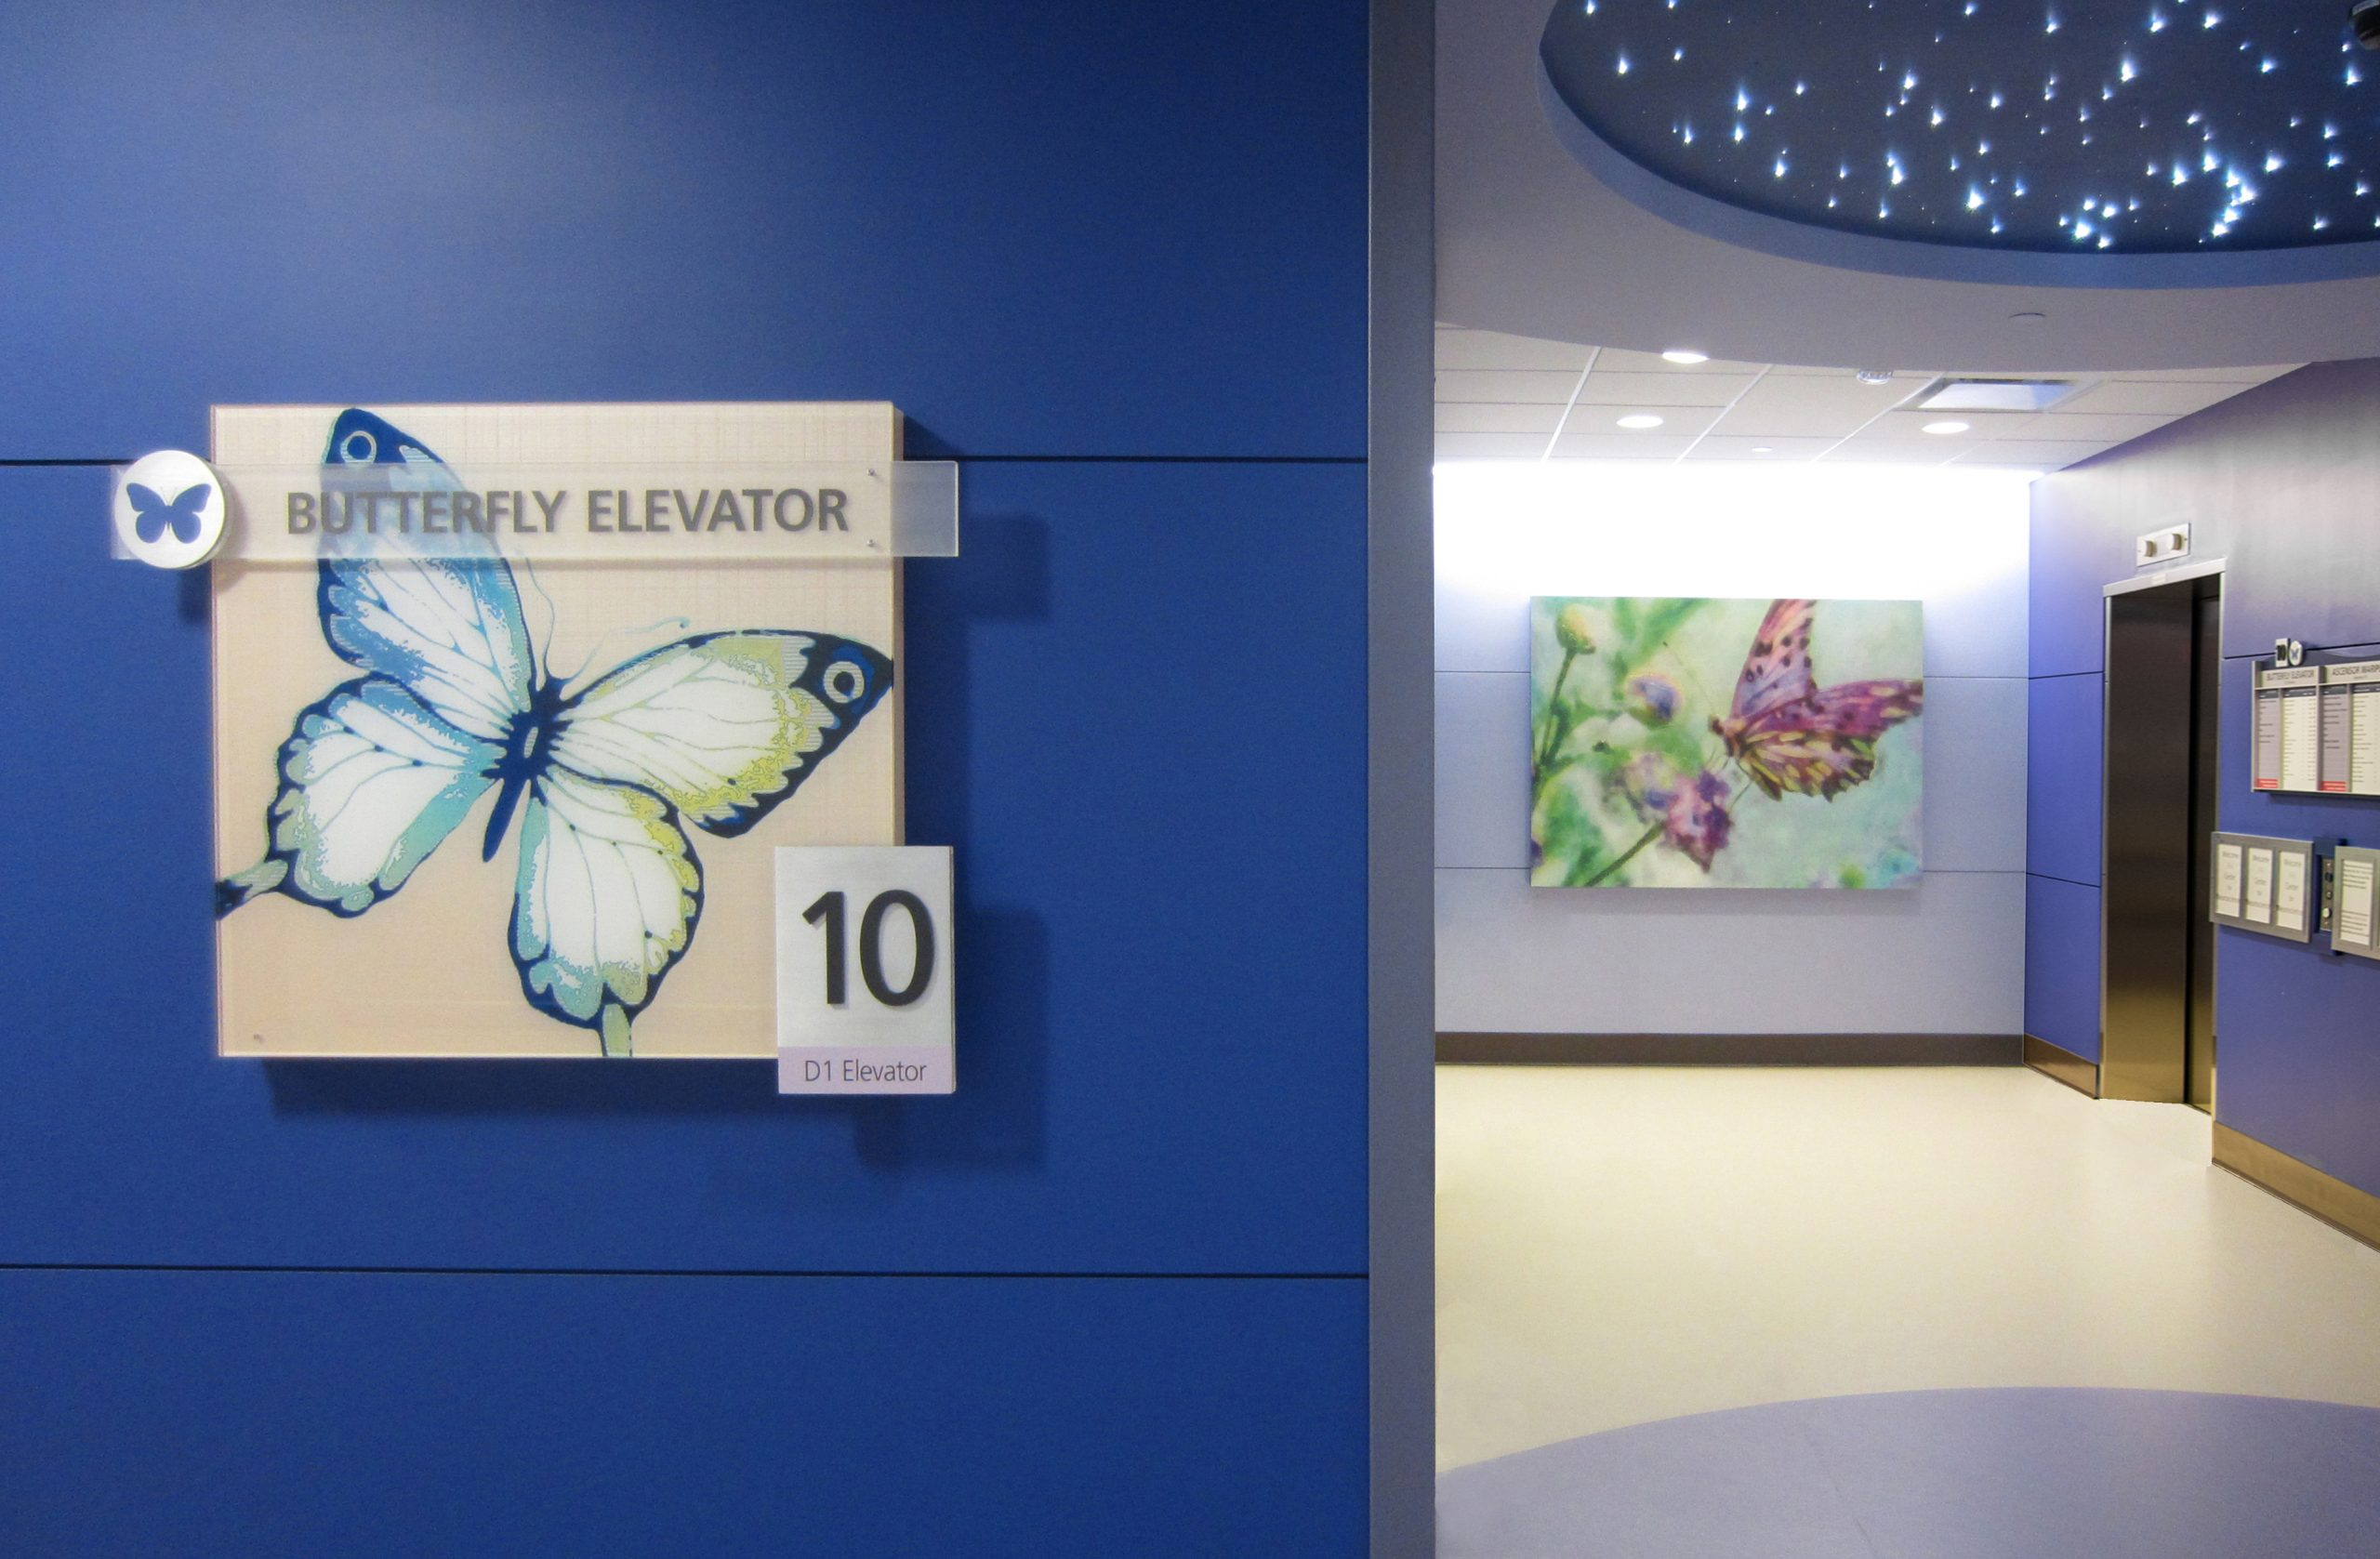 Visual Arts for Wayfinding at Children's Medical Center